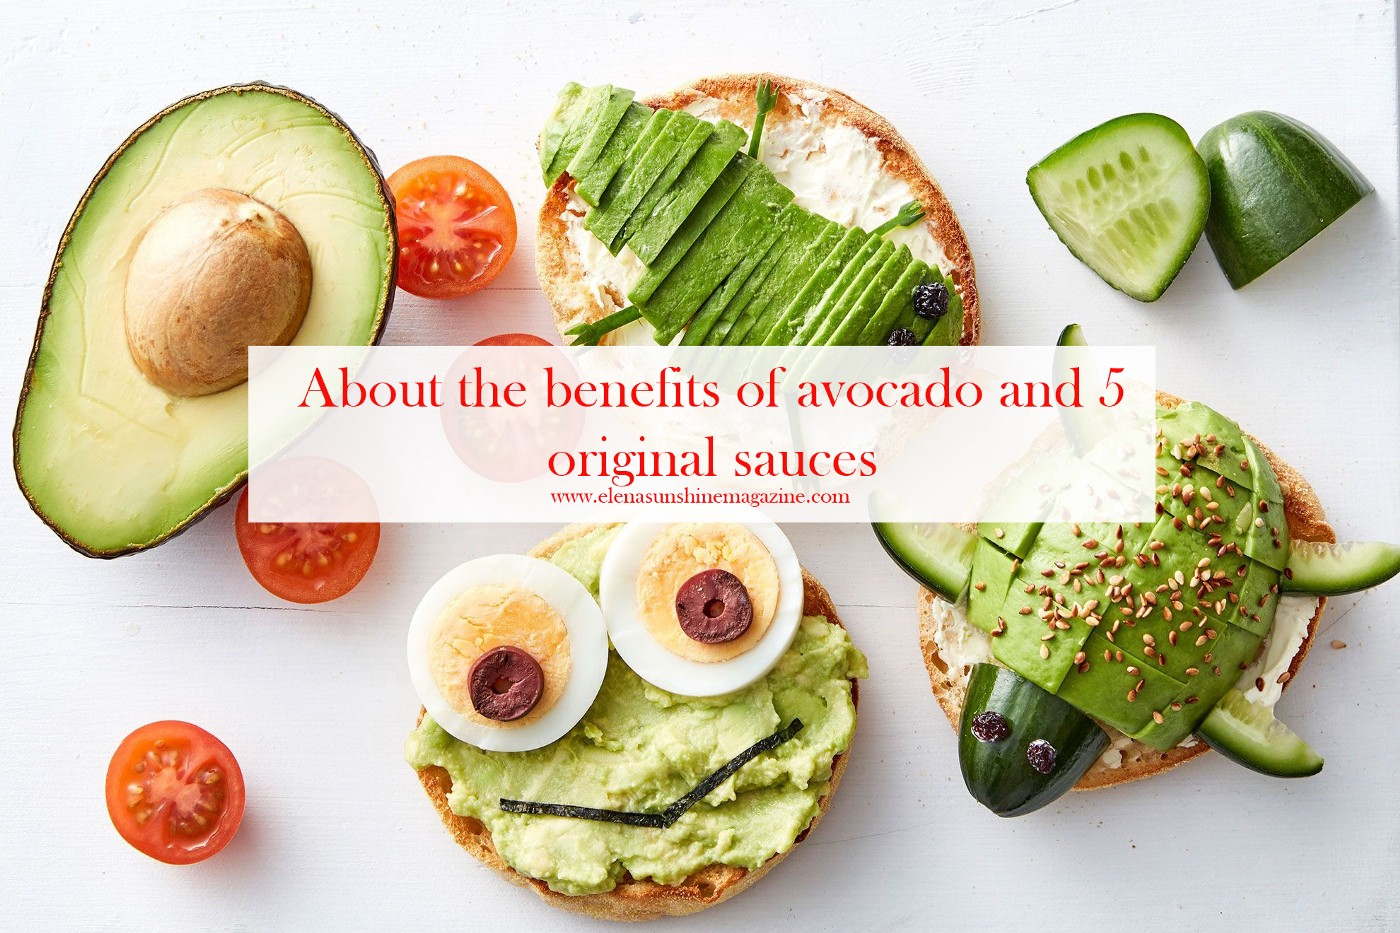 About the benefits of avocado and 5 original sauces